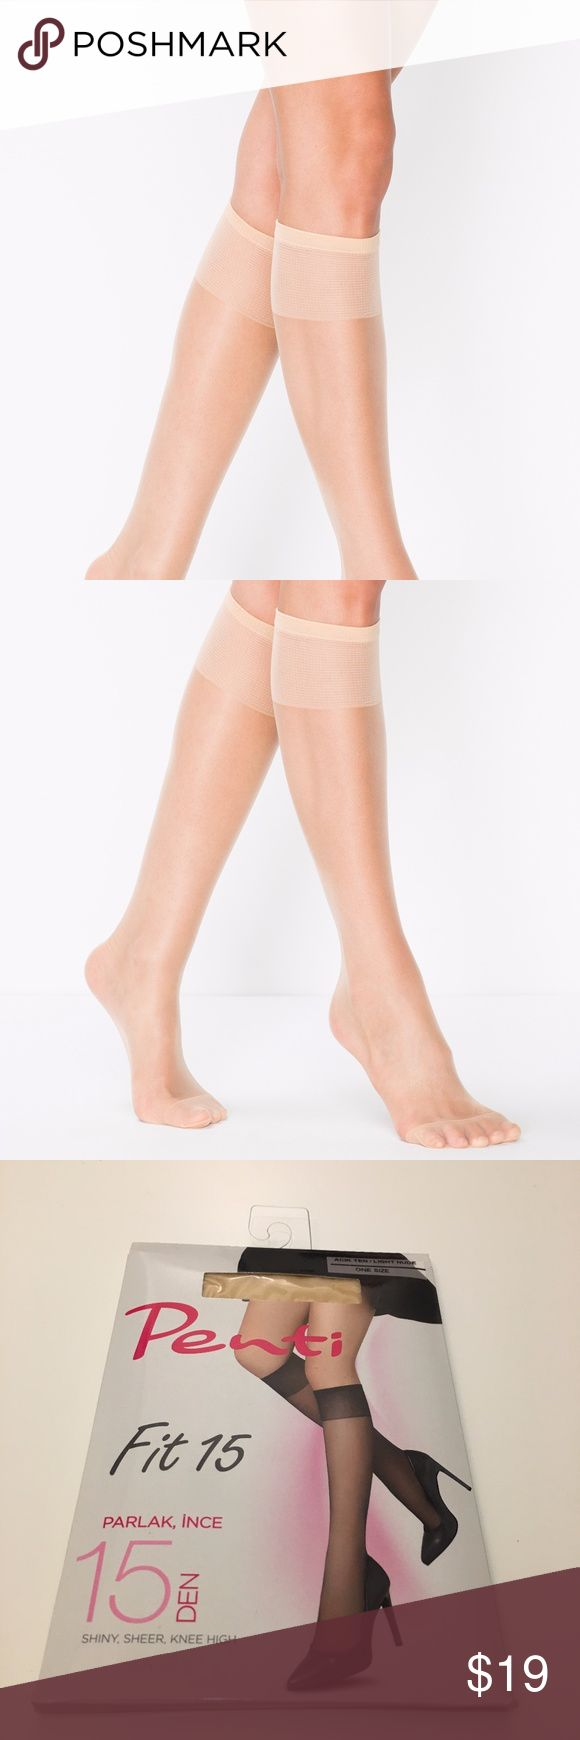 Penti Nylon Socks Sheer Shiny Knee Highs Socks NWT Penti Nylon Socks Sheer Shiny Knee Highs With Comfort Band Ultra Thin 3-Pack NWT Sheer Shiny Knee highs with comfort band and reinforced toe 85% Polyamide, 15% Elastane Comfortable with pants, skirts and dresses Made in Turkey Handwash only Color: Light Nude, Bronze Size: Standard Super thin 3- Pack, means 3 pairs of sockets Penti Accessories Hosiery & Socks